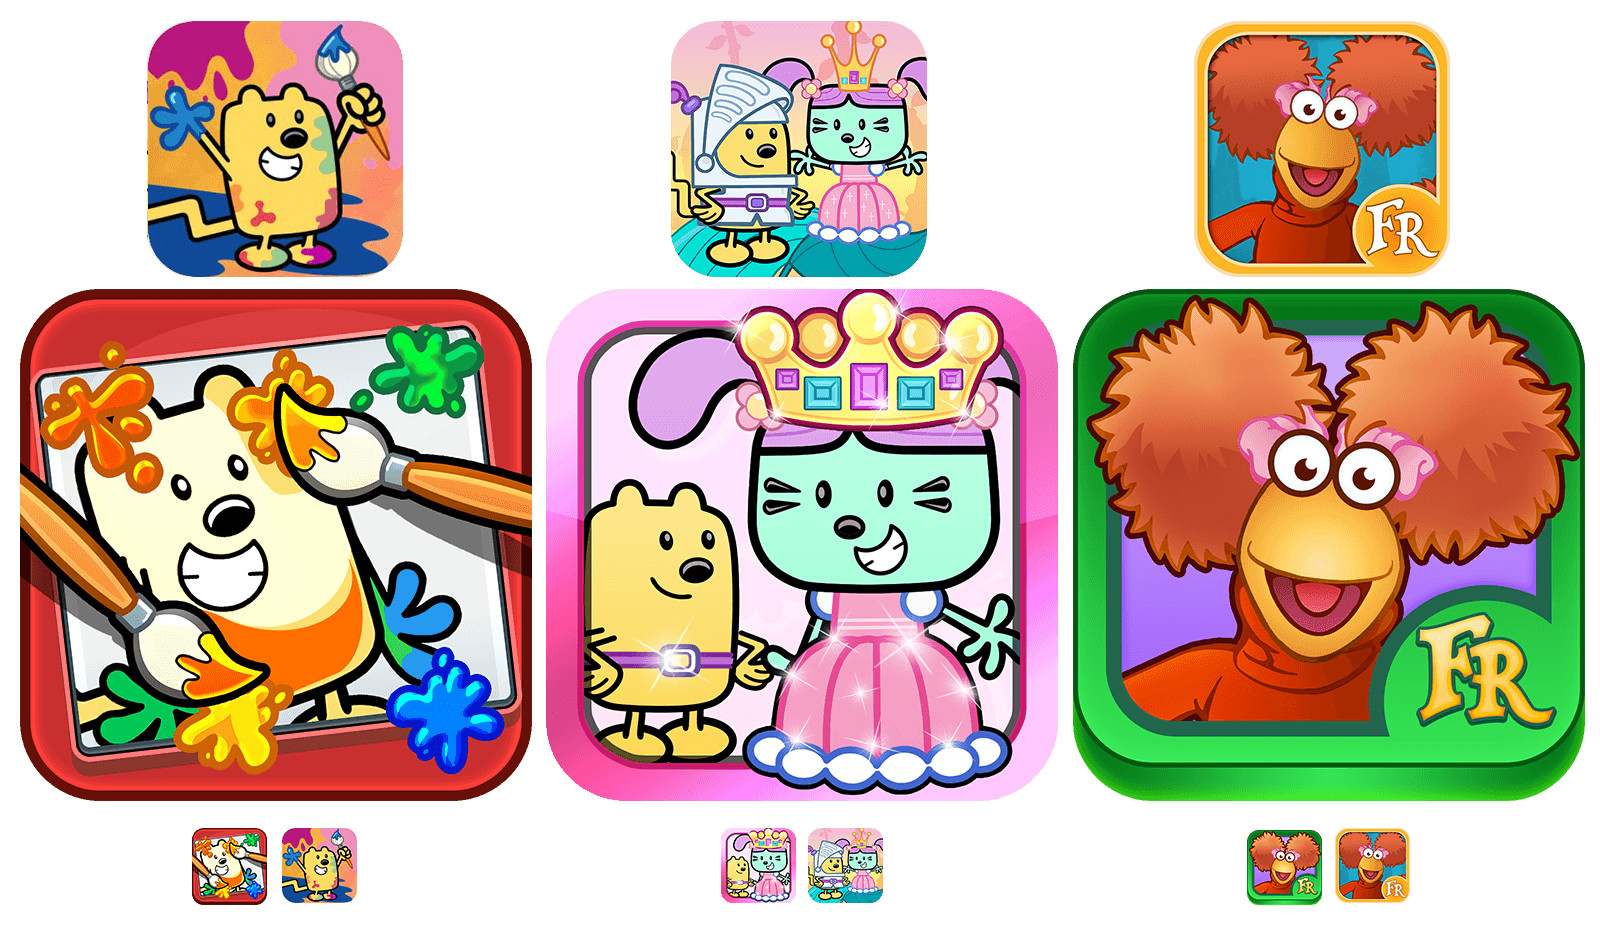 Designed many app icons for all our apps.